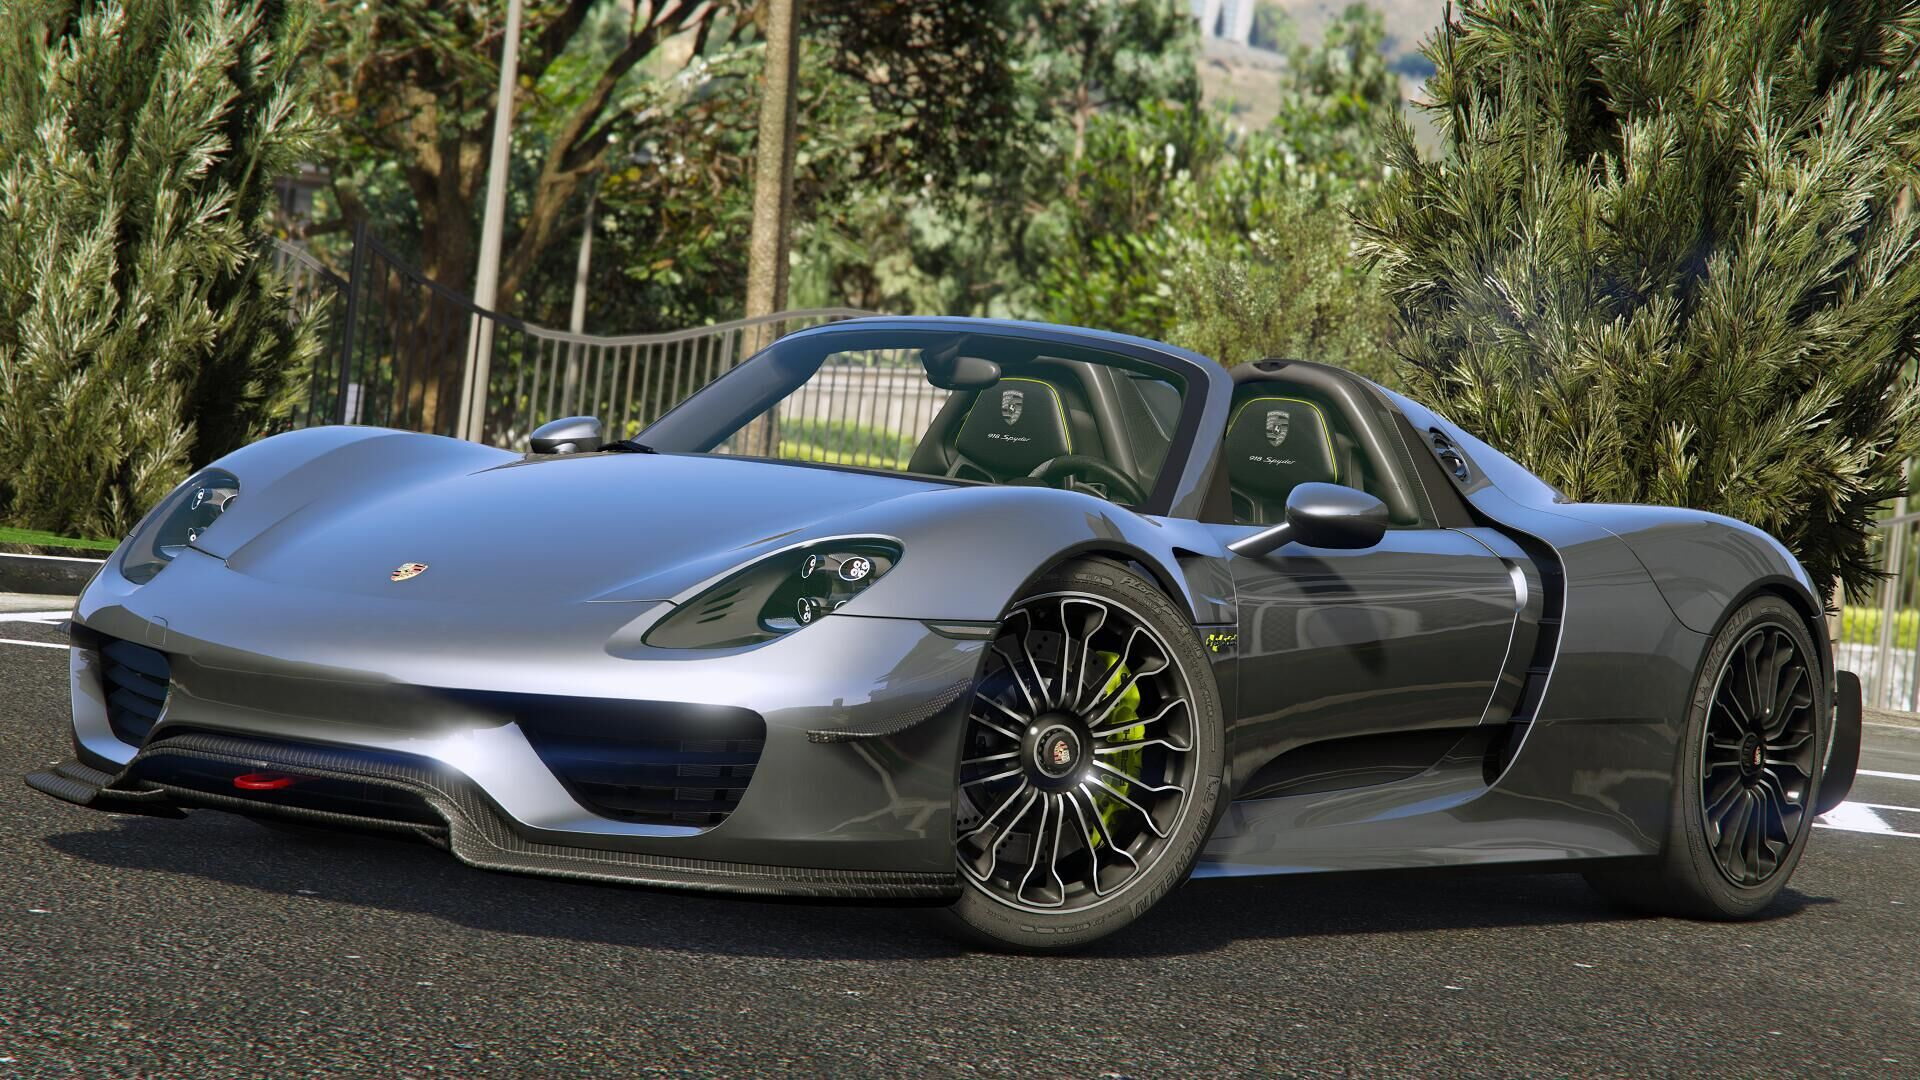 2015 porsche 918 spyder weissach kit add on gta5. Black Bedroom Furniture Sets. Home Design Ideas